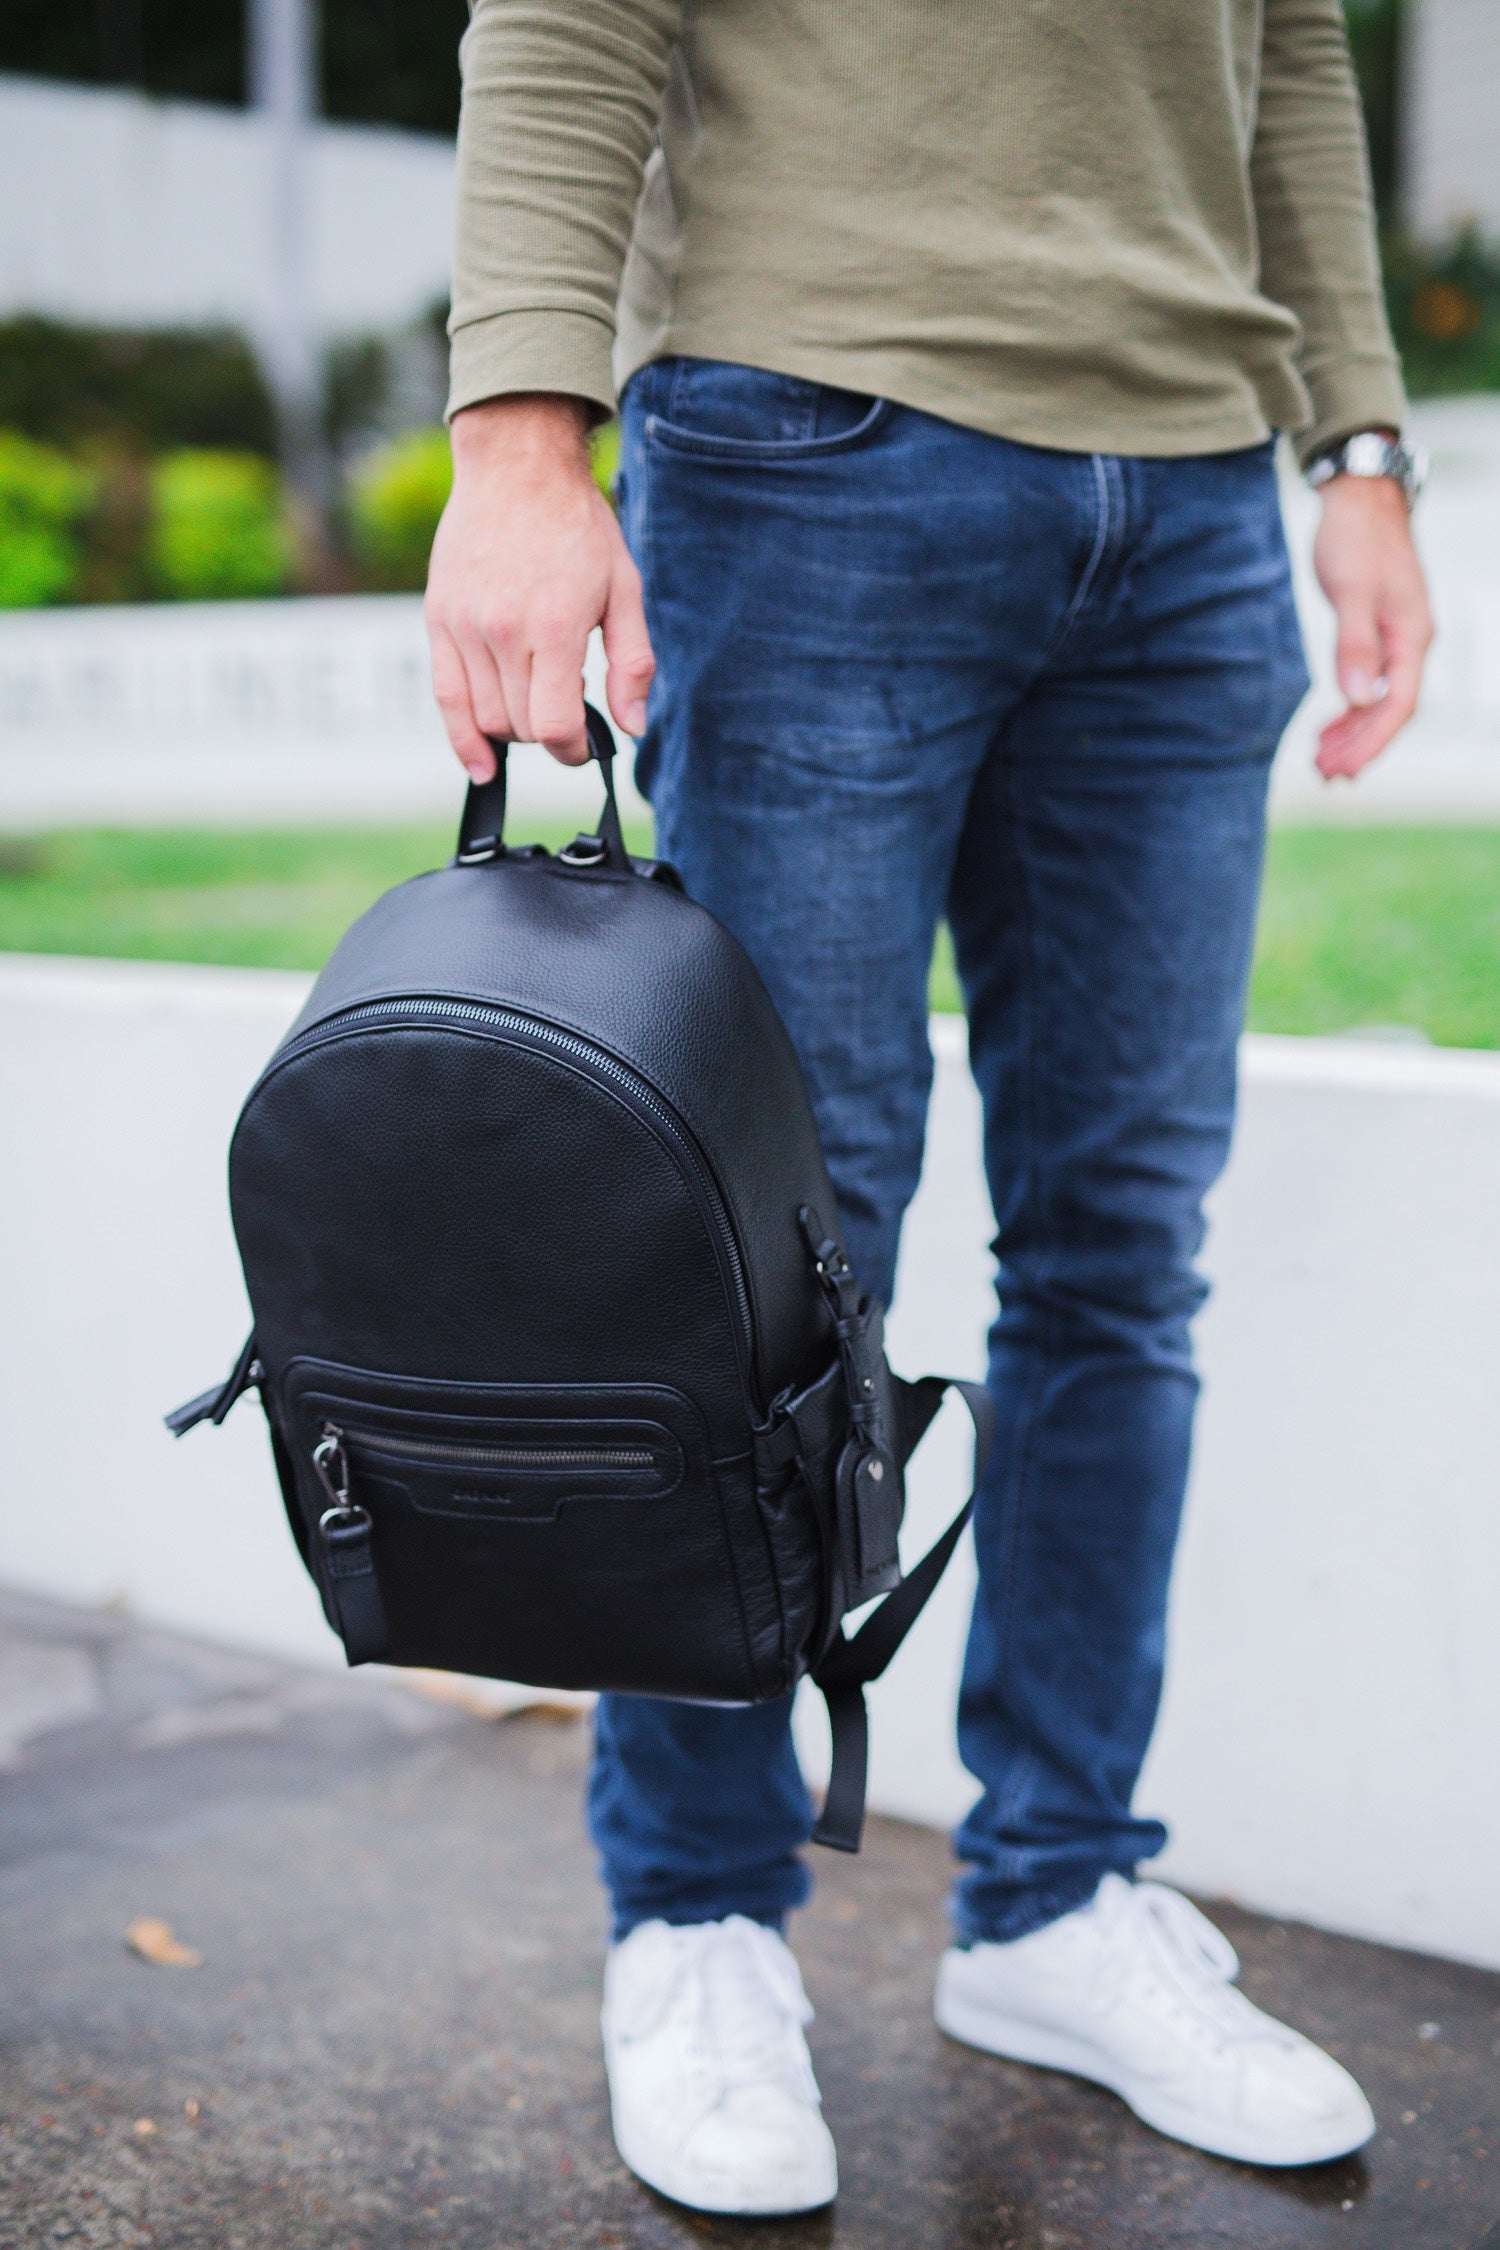 ONE NINE Interviews - Luke and Tygar Devere with Parental Backpack